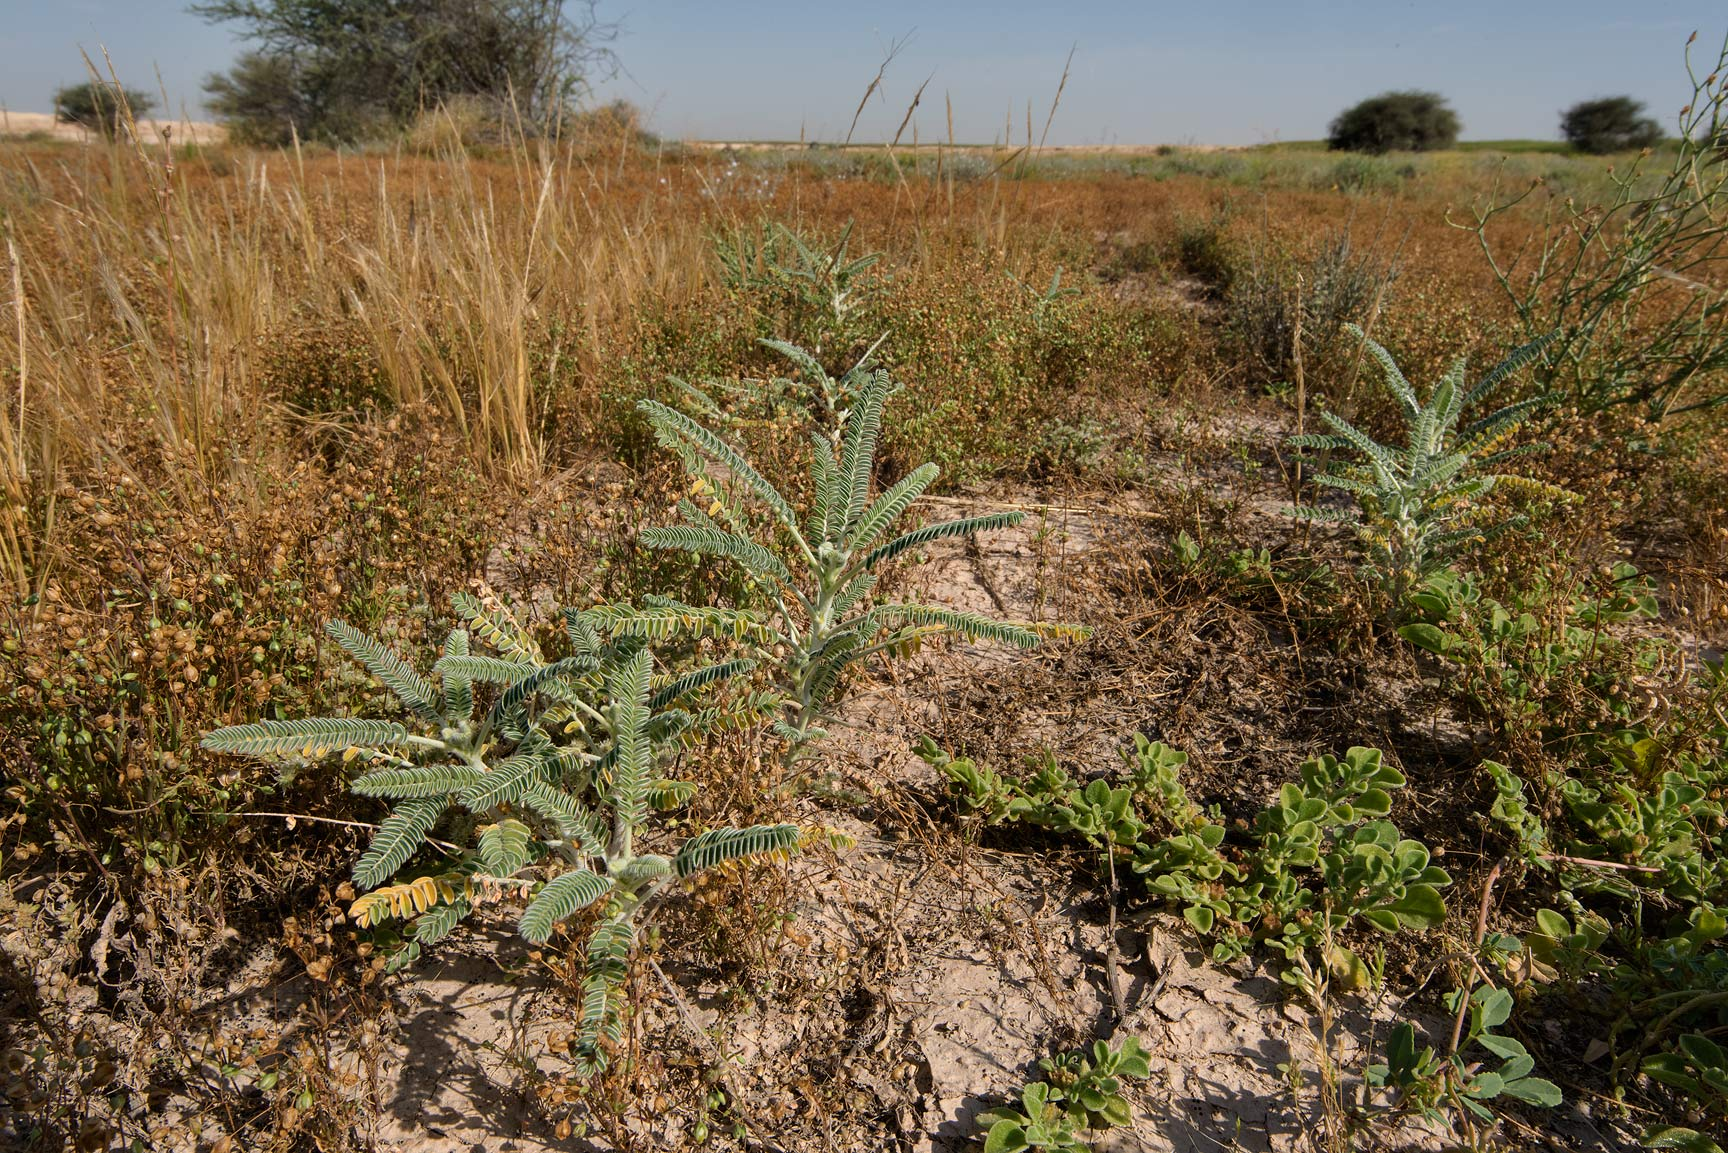 Seedlings of Astragalus sieberi in a depression...in Irkhaya (Irkaya) Farms. Qatar